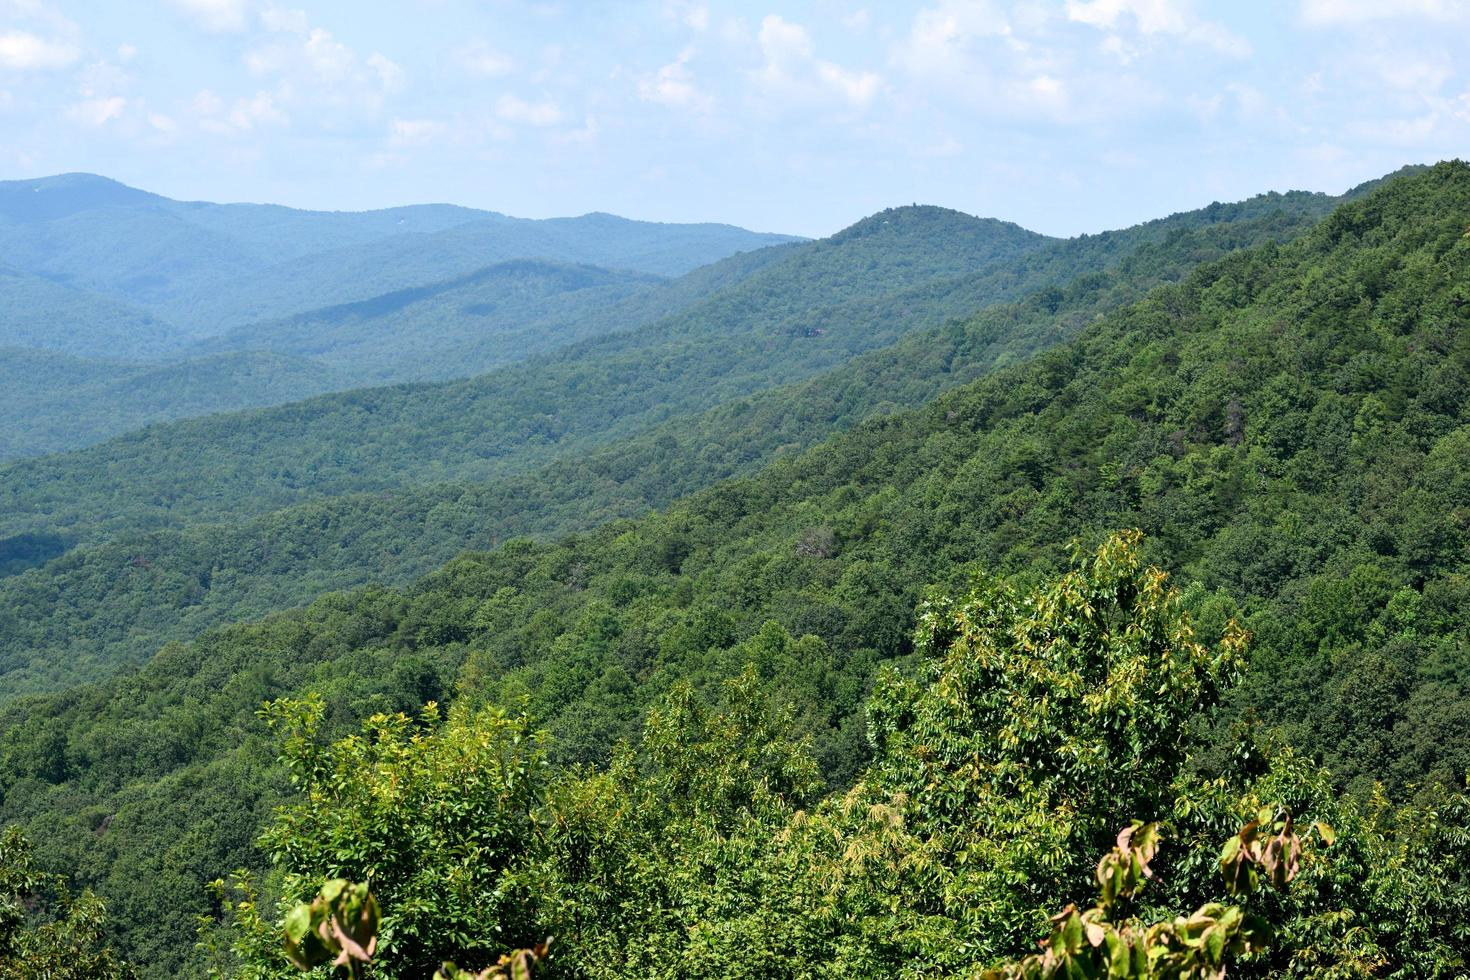 Forest on the Appalachian mountains photo